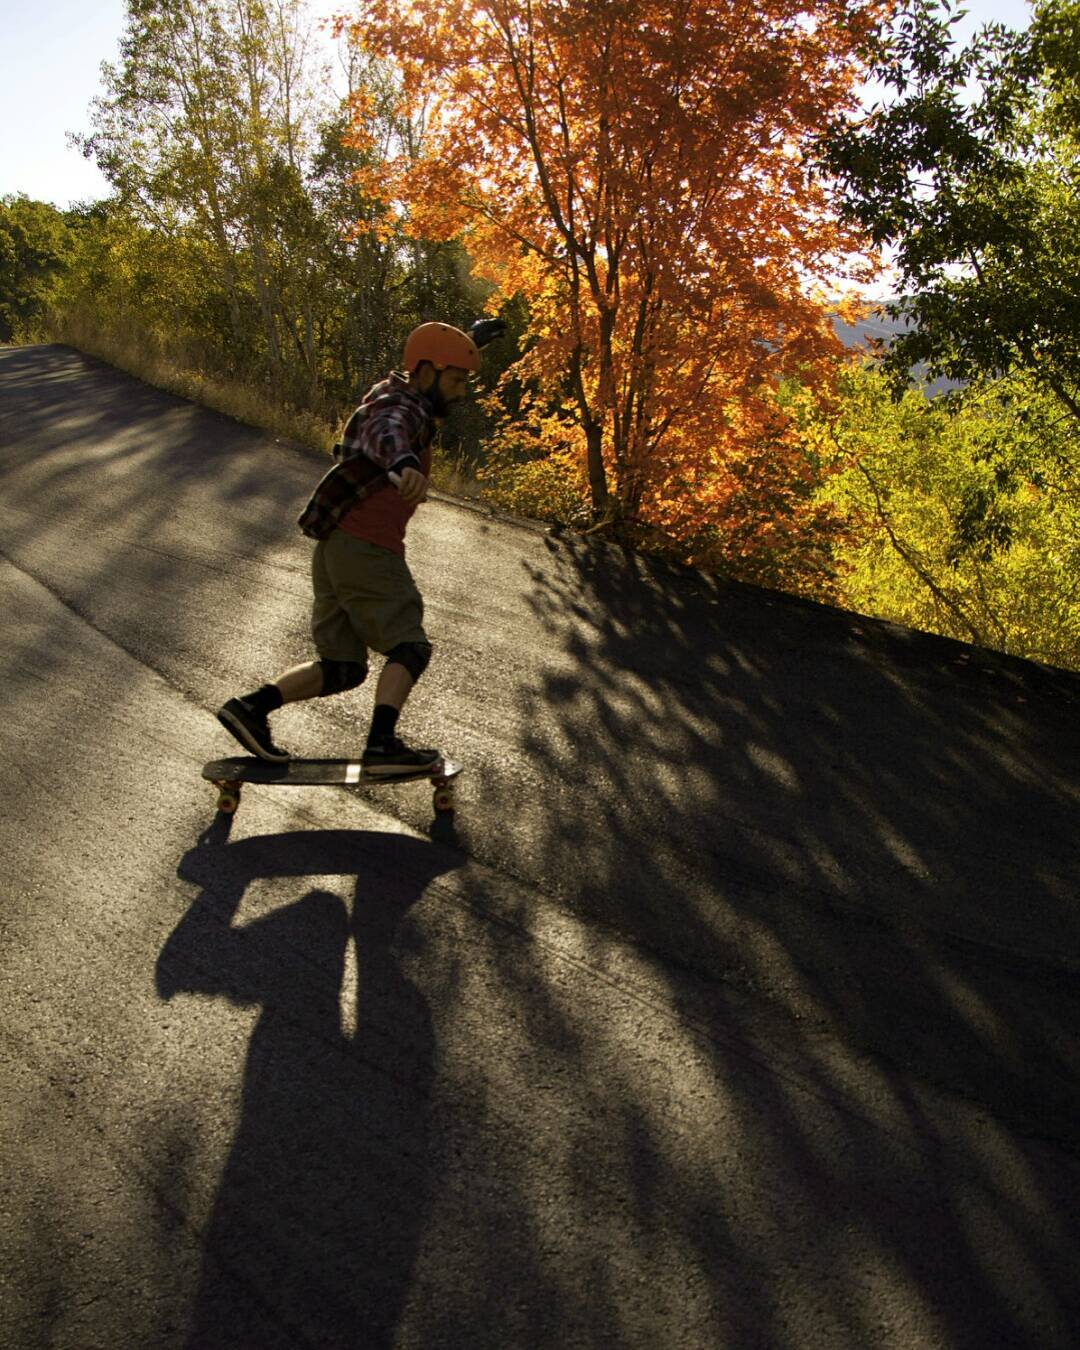 #LoadedAmbassador @rileywirvine heads to the lower lands of Utah to escape the coming winter. On his descent, he takes a minute to slow down and enjoy the colorful foliage that reminds him of his strong addiction to Pumpkin Spice Lattes.  Photo:...